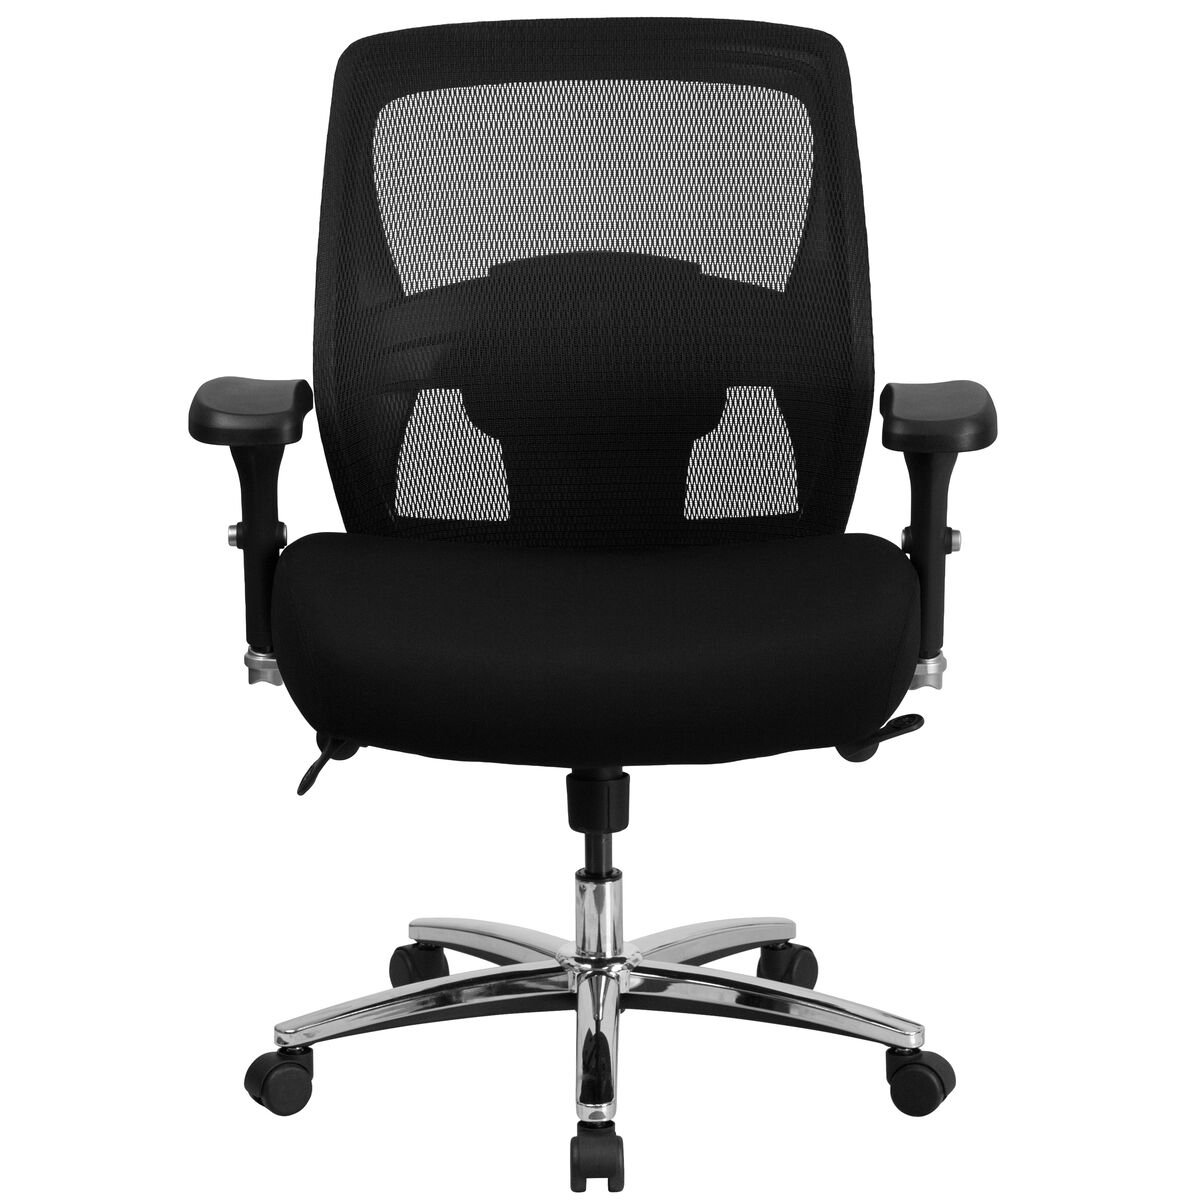 Sensational Hercules Series 24 7 Intensive Use Big Tall 500 Lb Rated Black Mesh Executive Ergonomic Office Chair With Ratchet Back Pdpeps Interior Chair Design Pdpepsorg